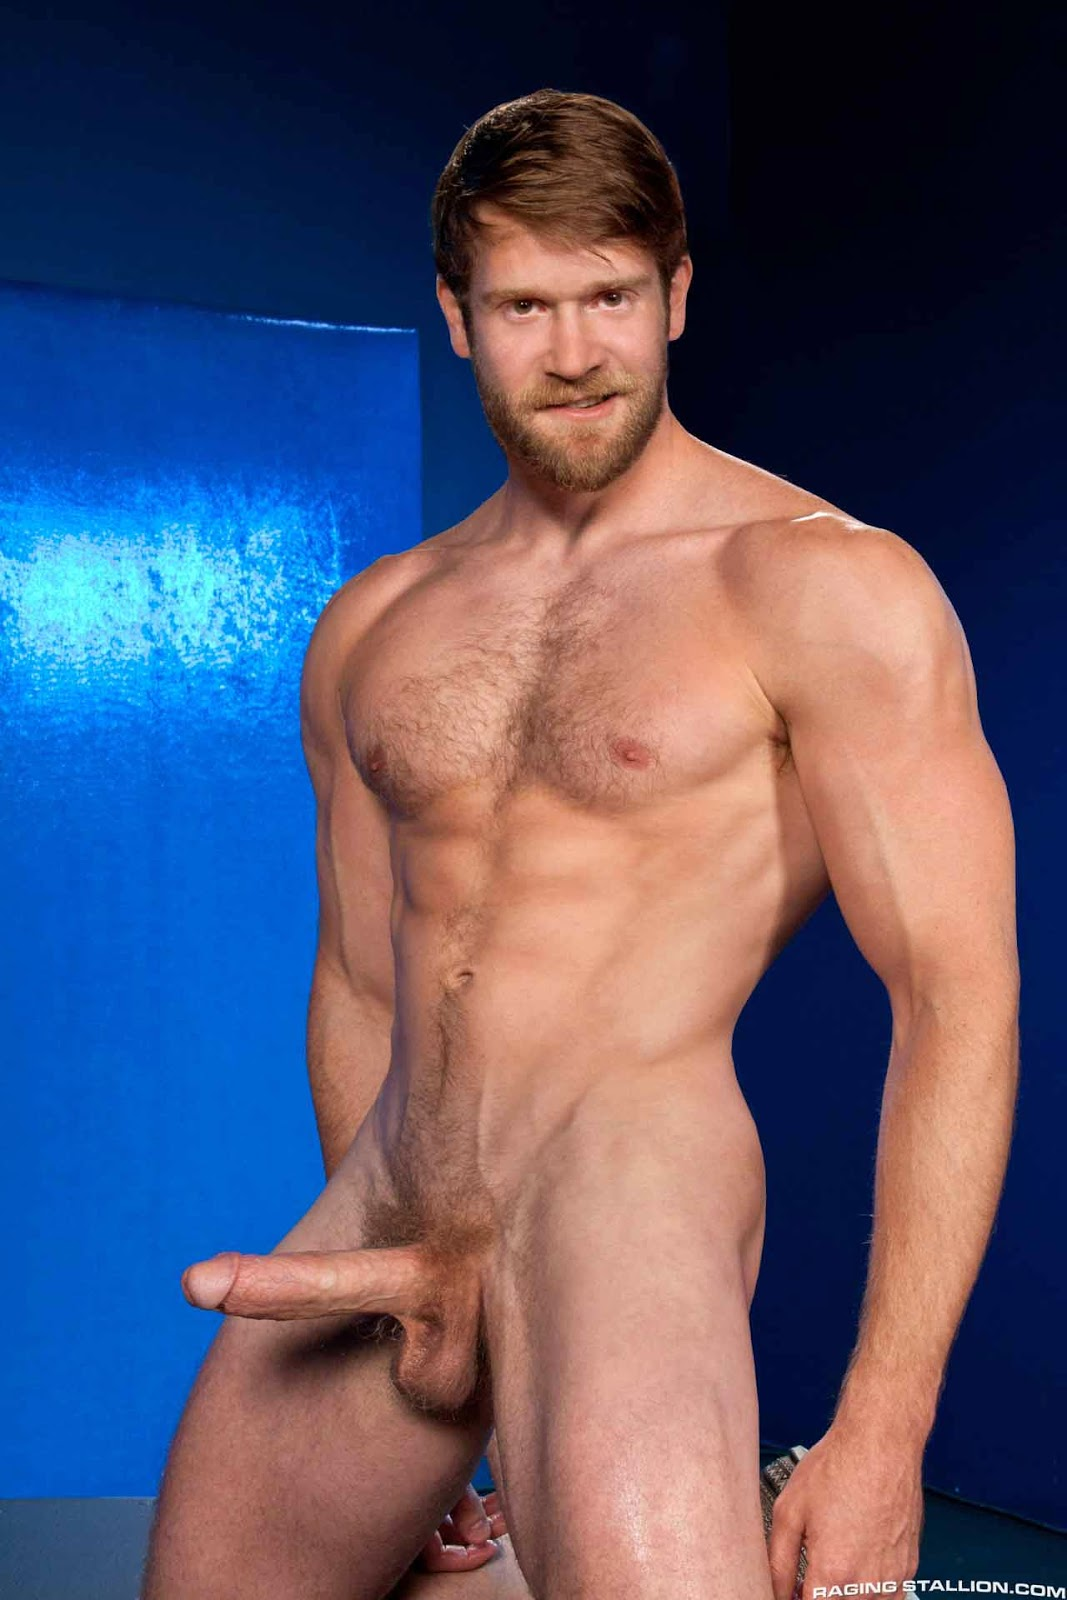 Jeff horny and hairy bvr 2